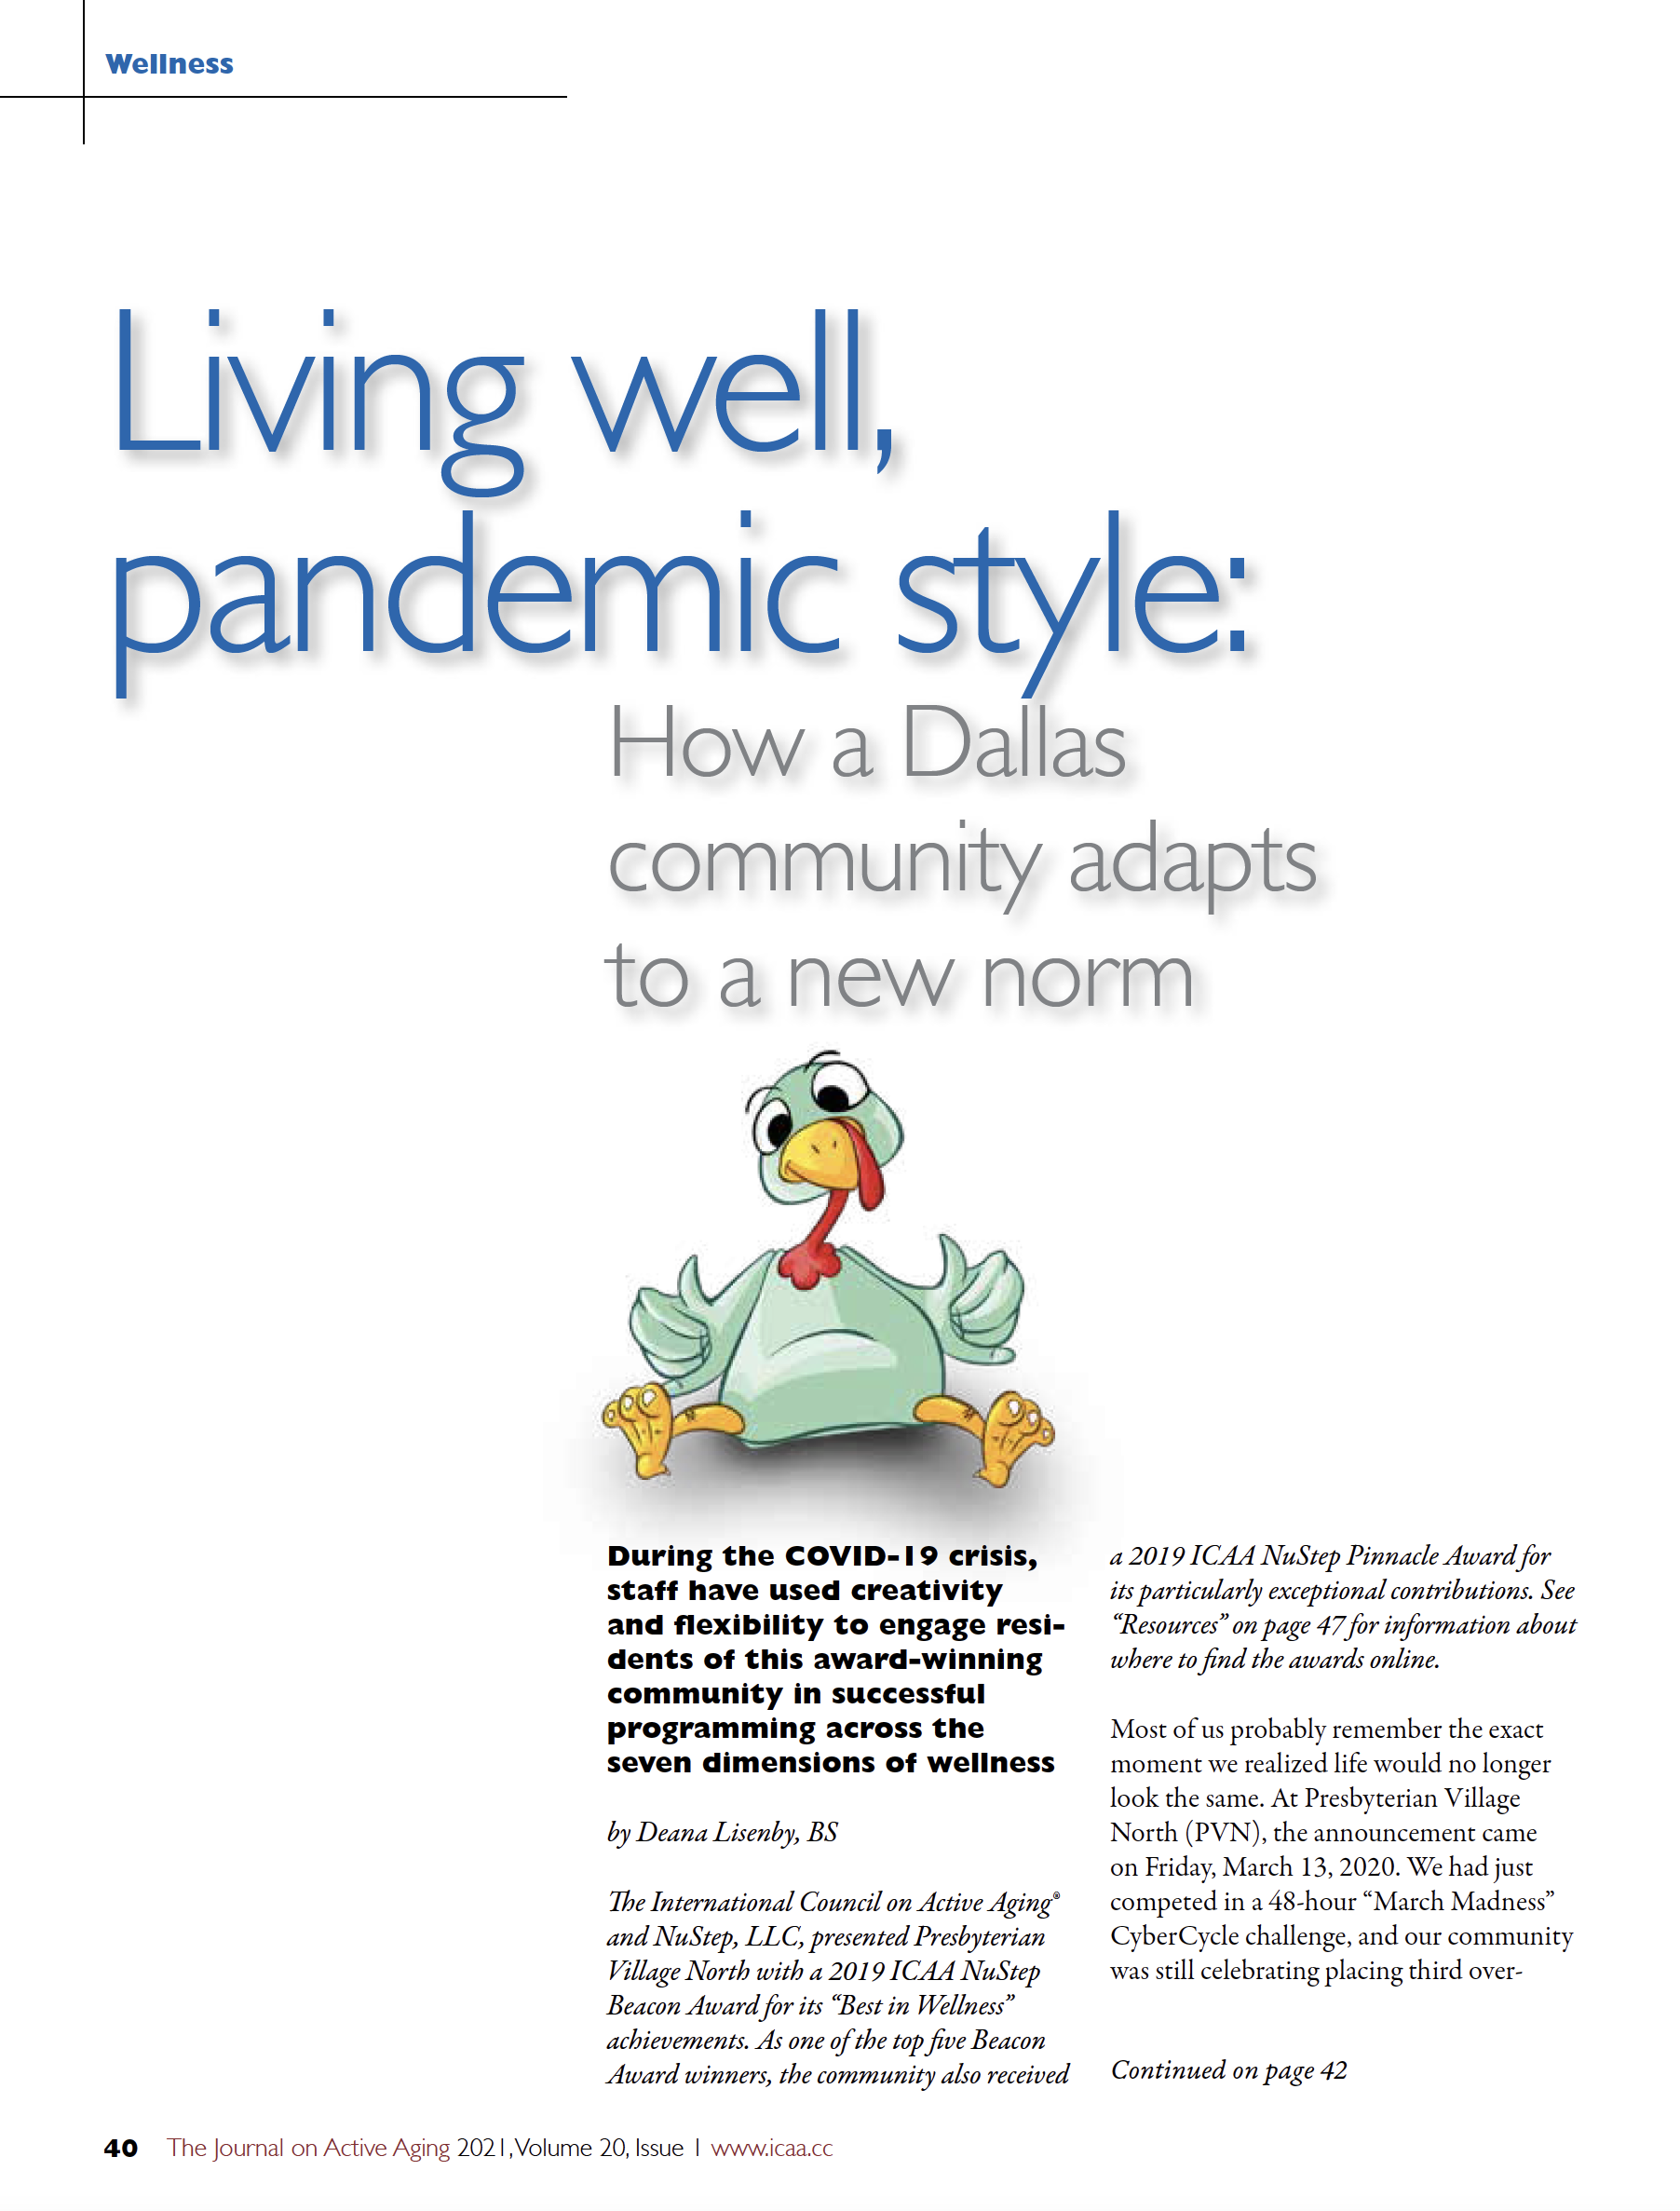 Living well, pandemic style: How a Dallas community adapts to a new norm